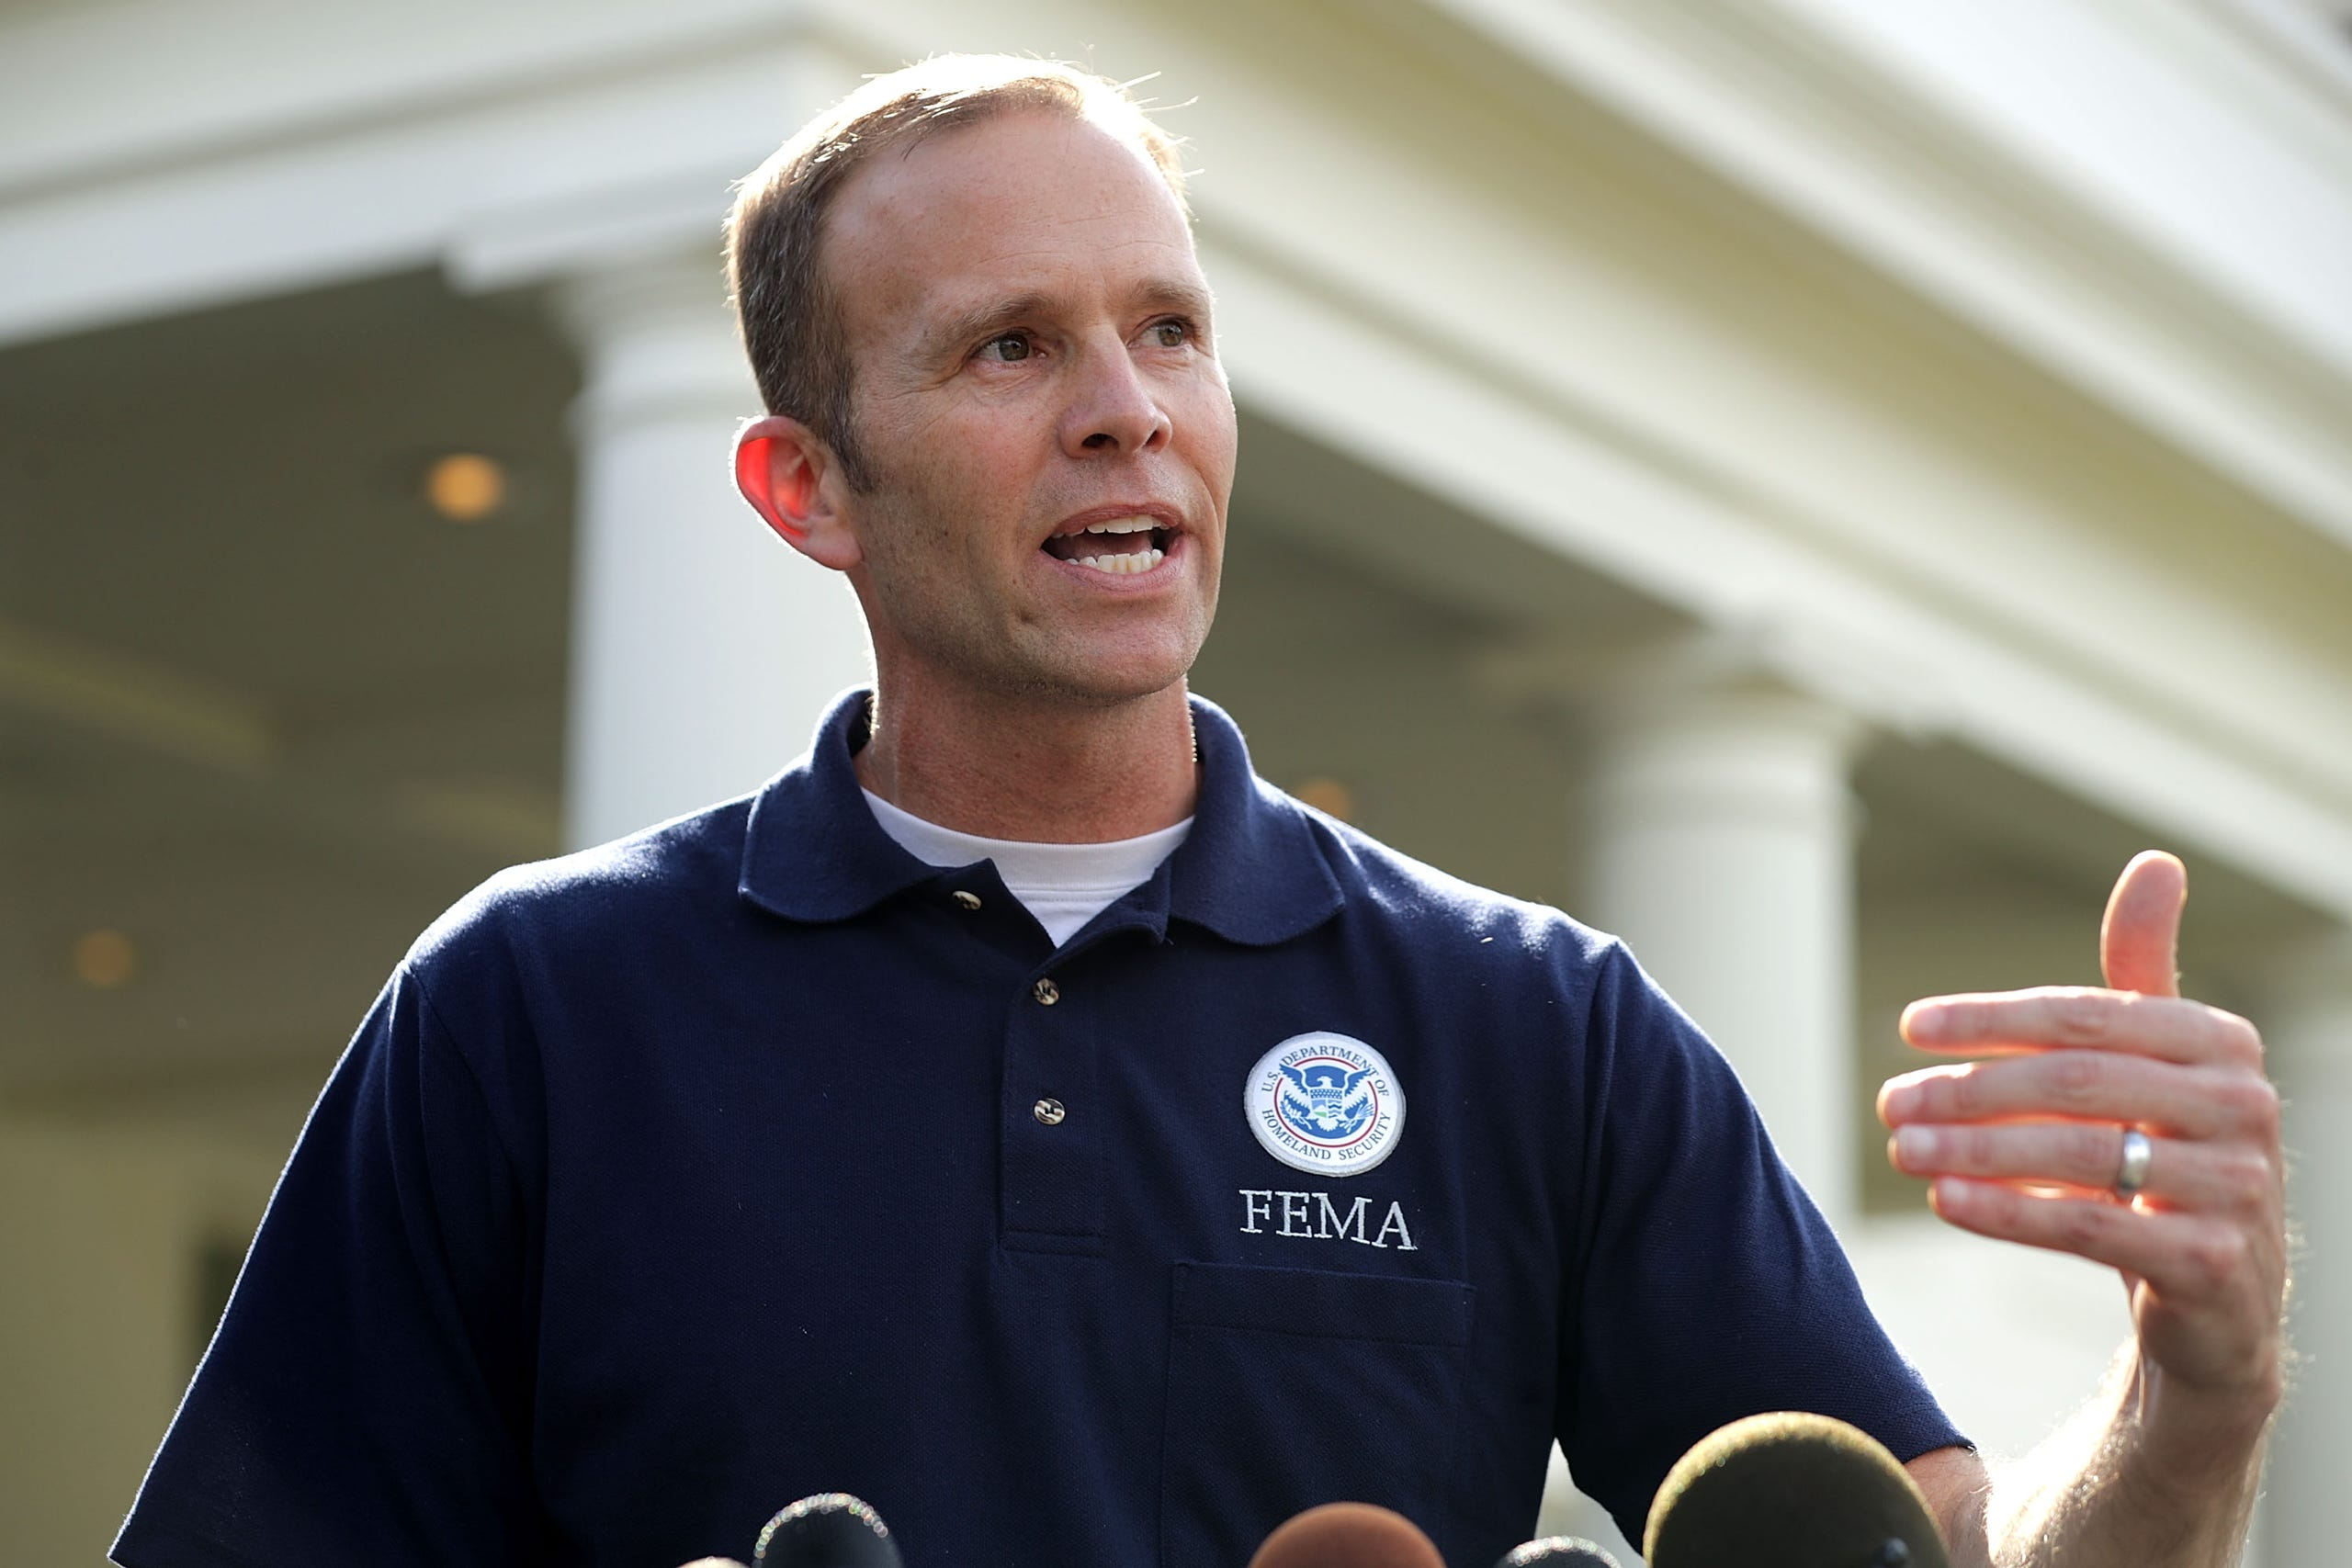 Federal Emergency Management Agency Administrator Brock Long talks to reporters outside the West Wing of the White House Sept. 26, 2017 in Washington. Long, who drew praise and criticism for his agency's response to major disasters, including Hurricane Maria, is leaving the agency.